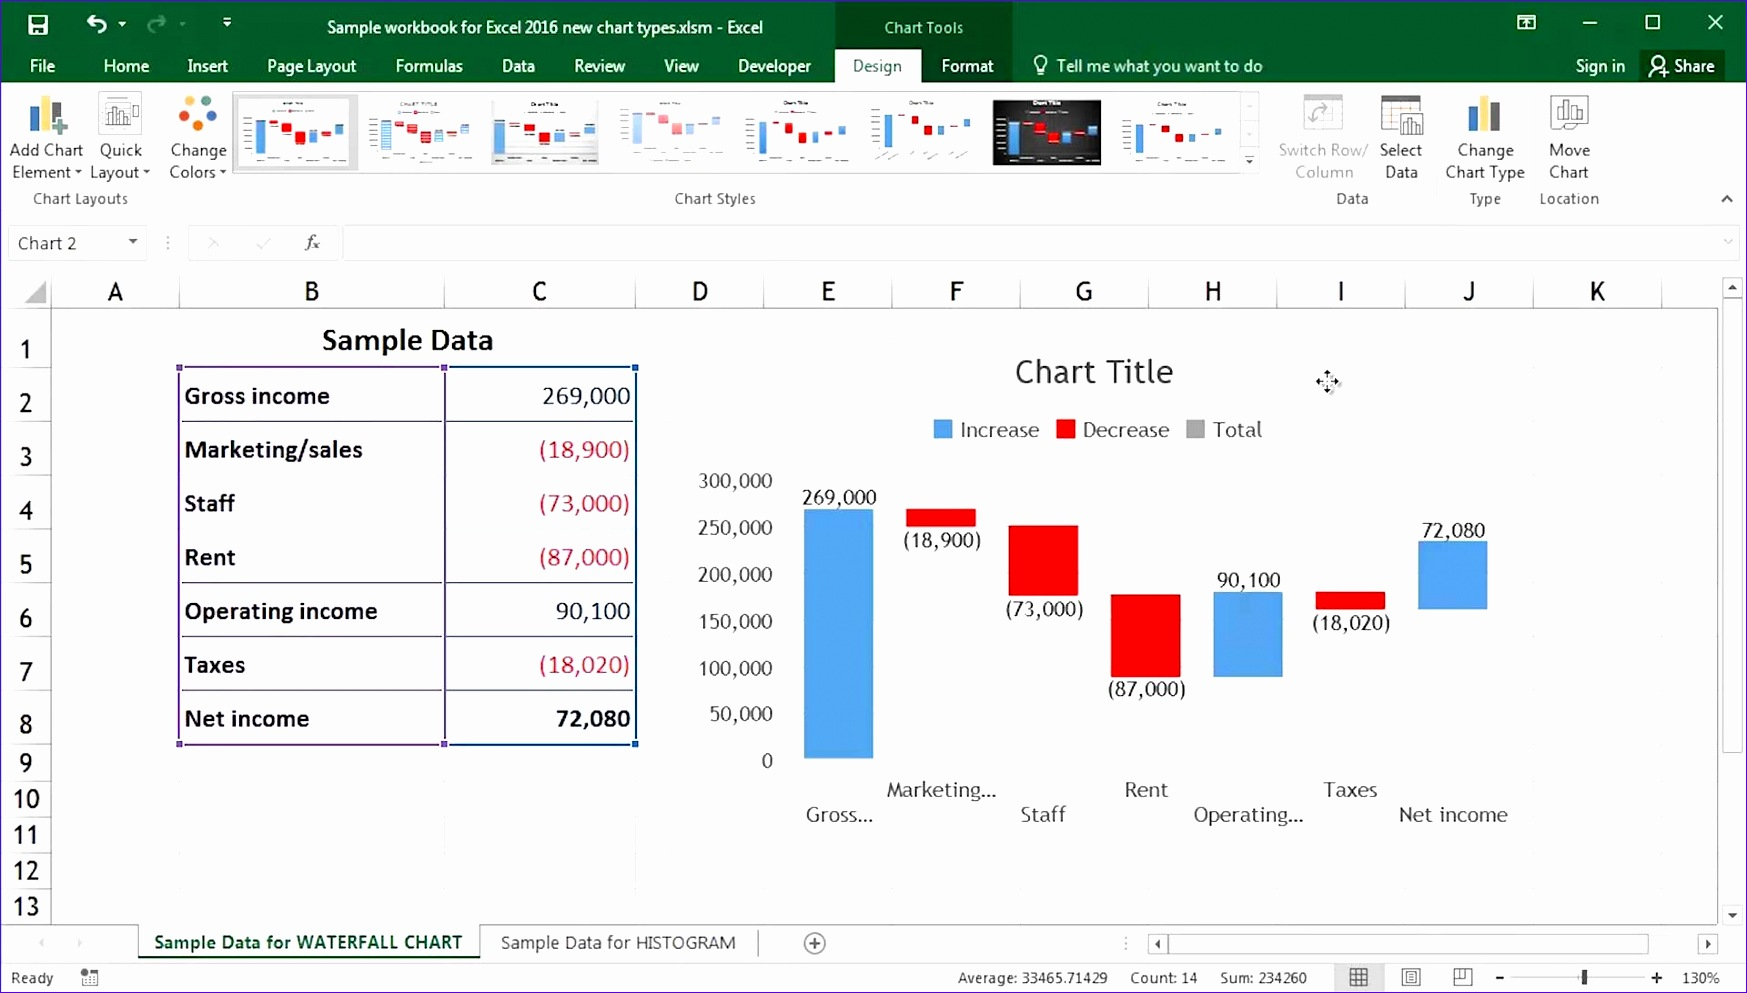 6 Excel Waterfall Chart Template With Negative Values